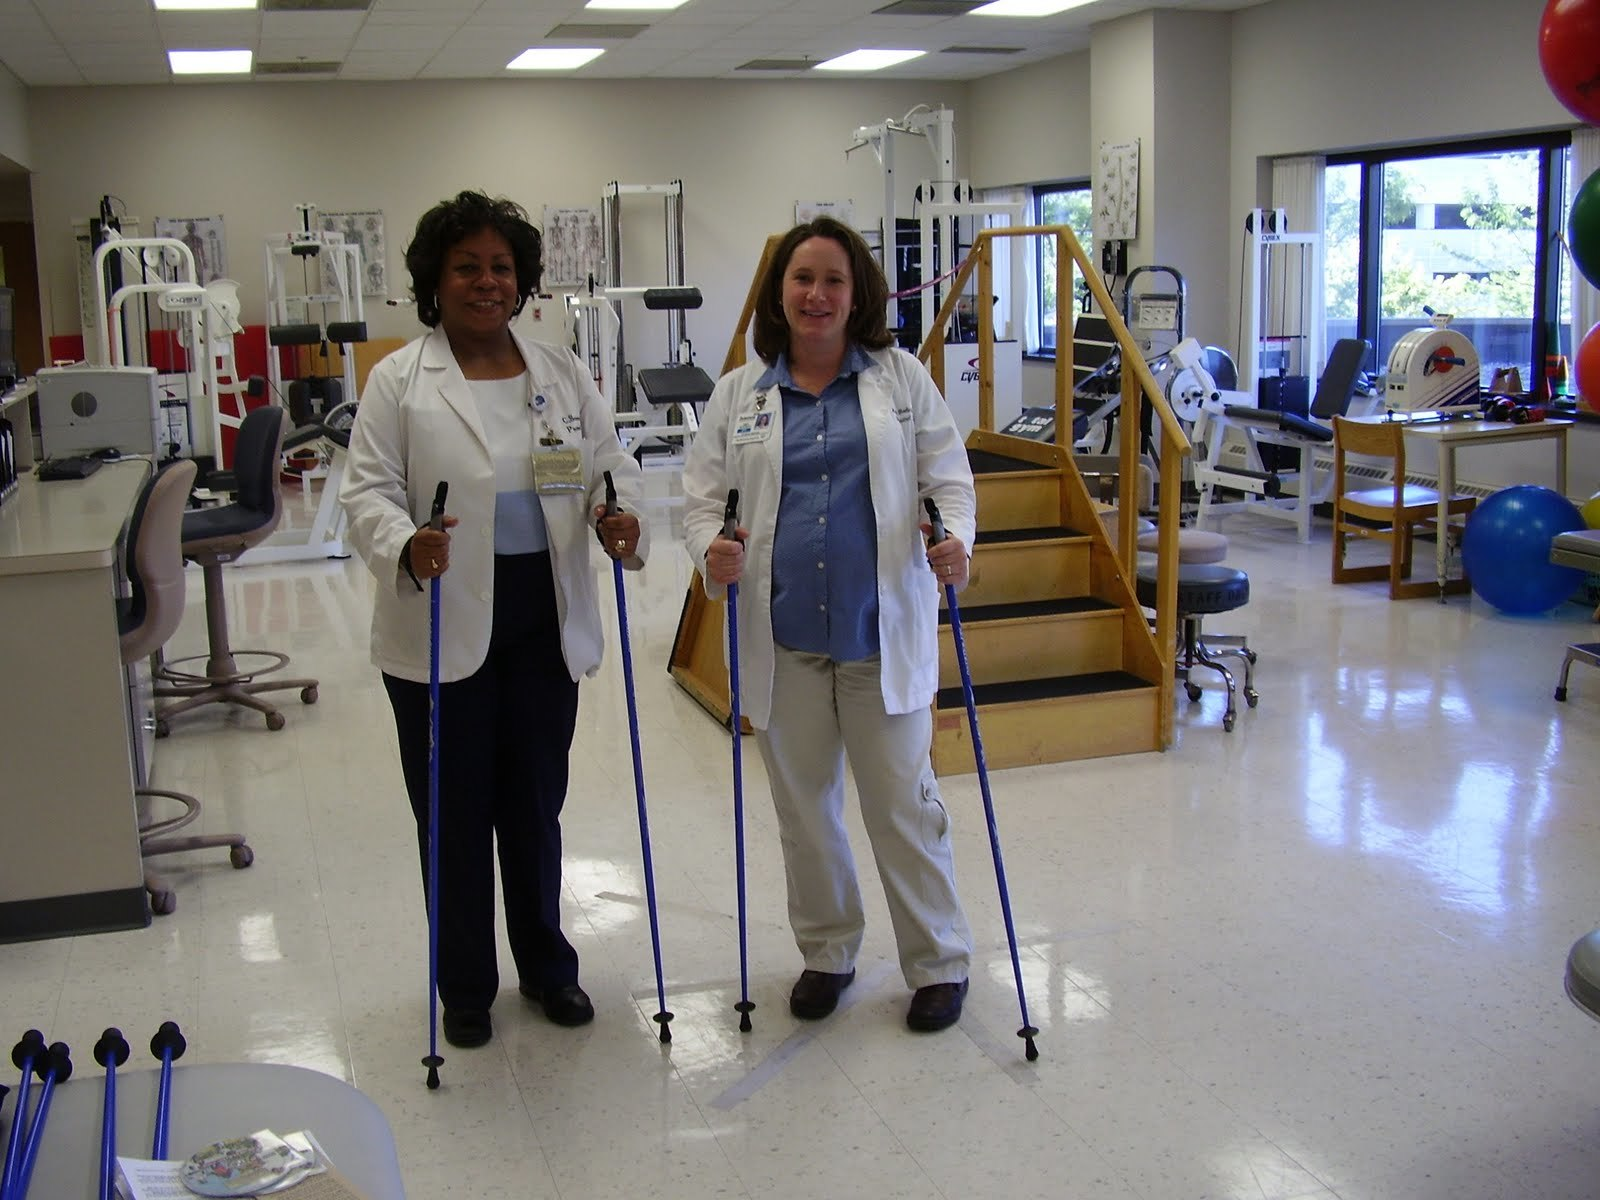 The best Nordic Walking Poles for balance, stability and physical therapy